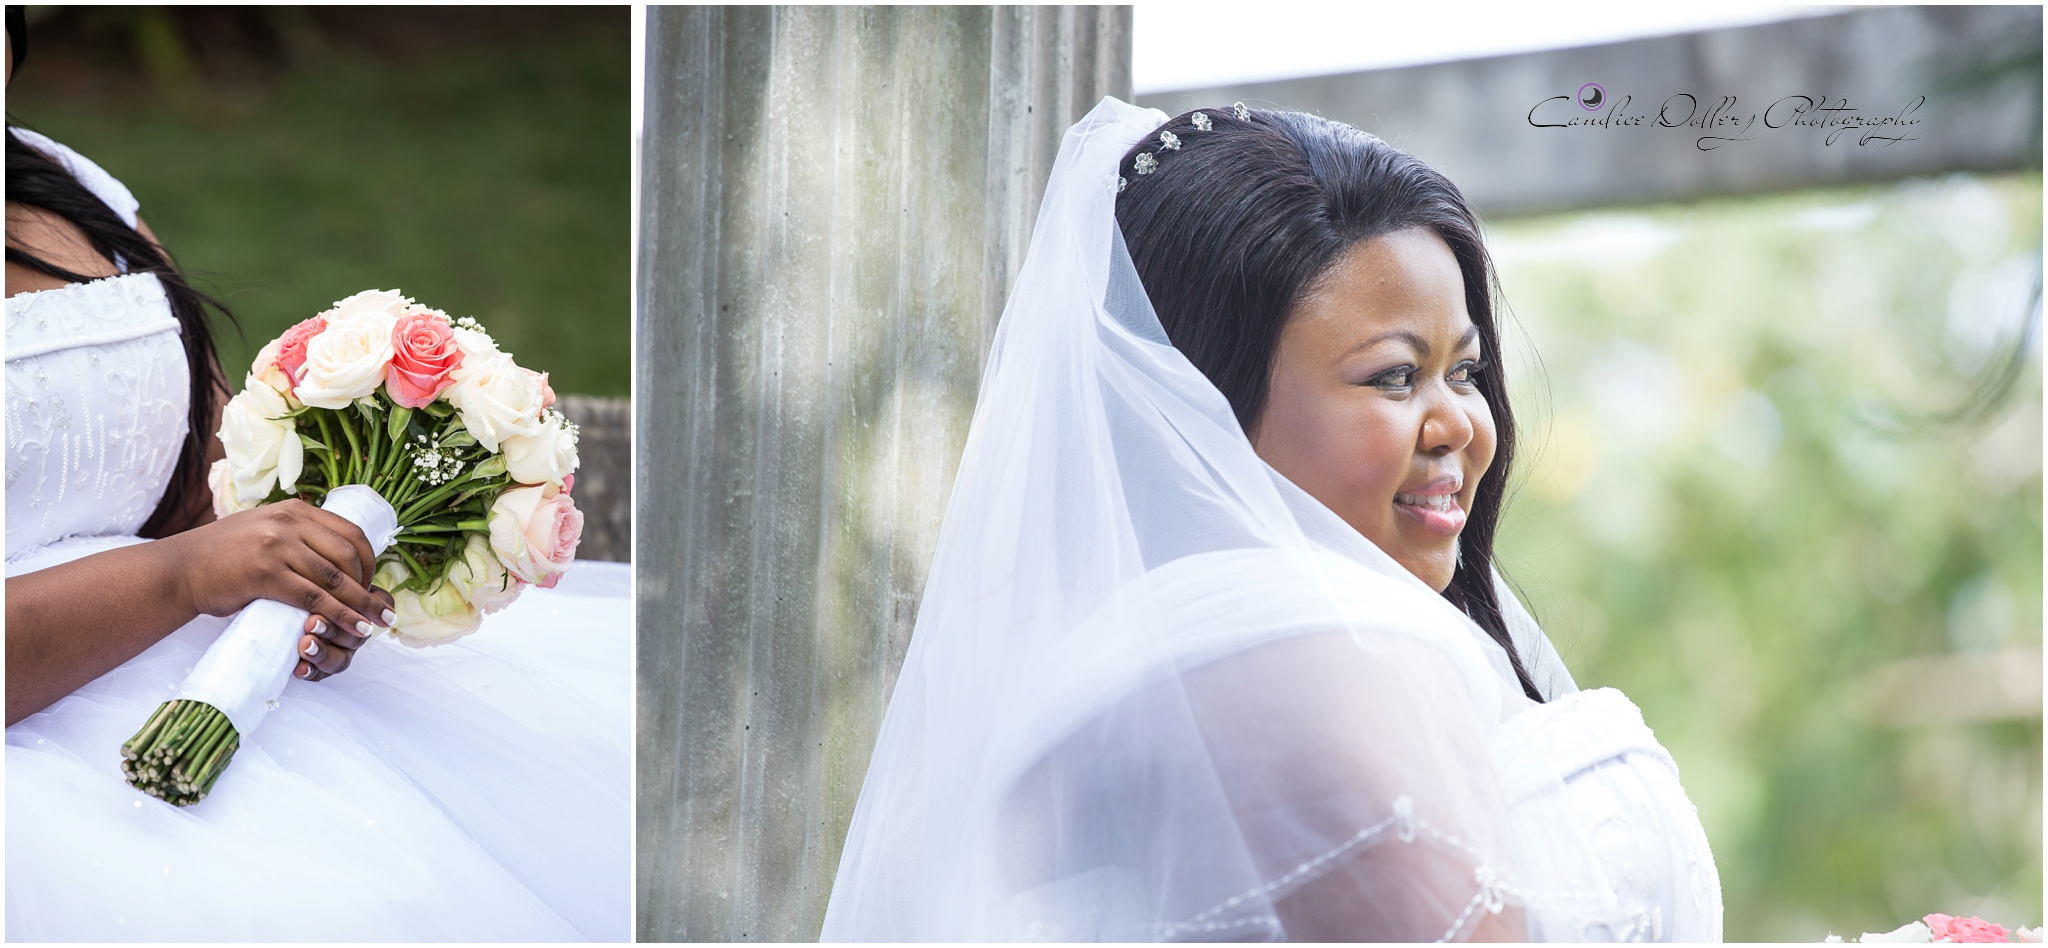 Wedding Gonubie Manor Thola & Phili-Candice Dollery Photograhy_4275